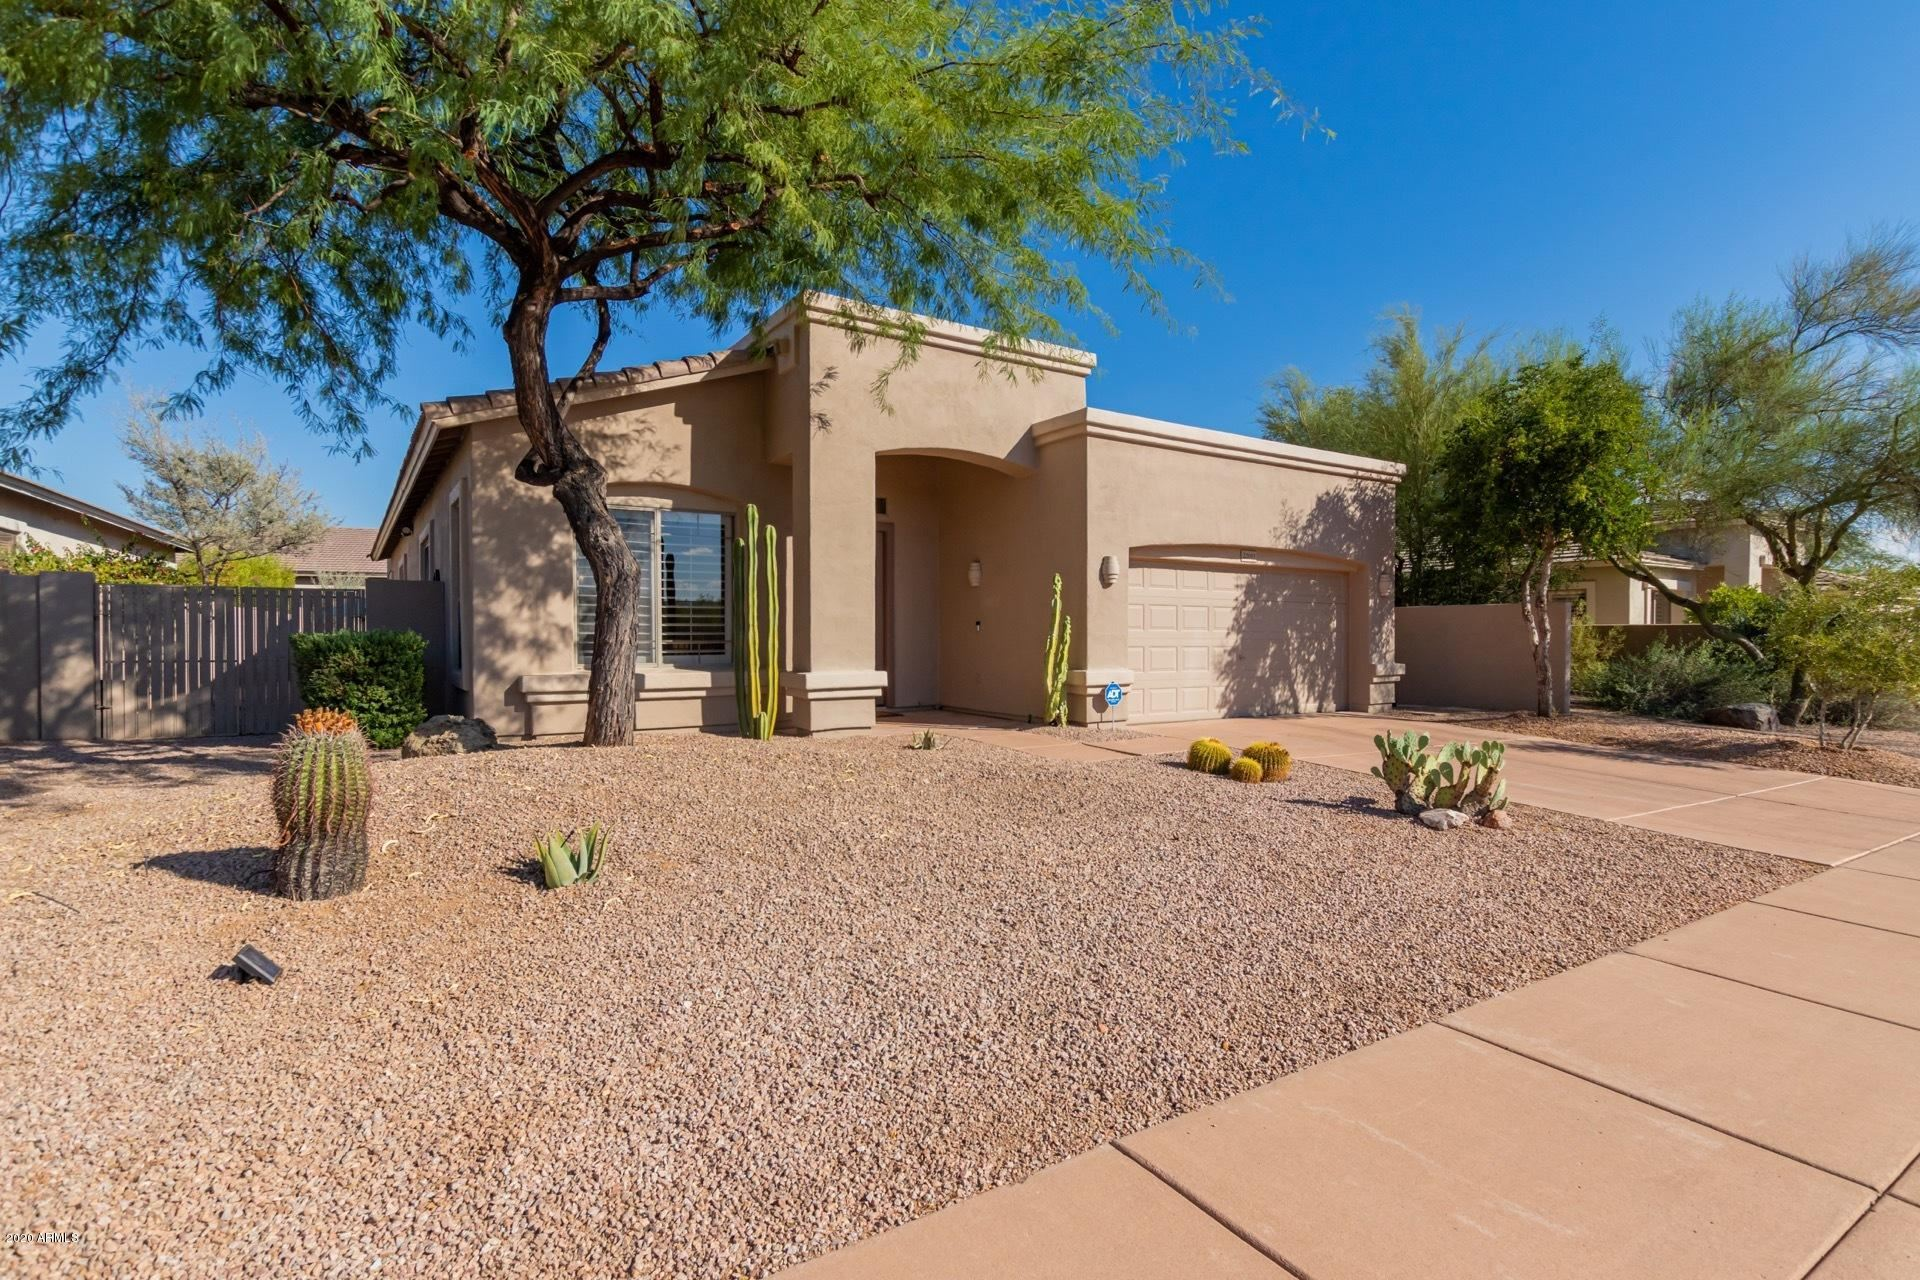 22019 N 50TH Street, Phoenix, AZ 85054 - MLS#: 6114890